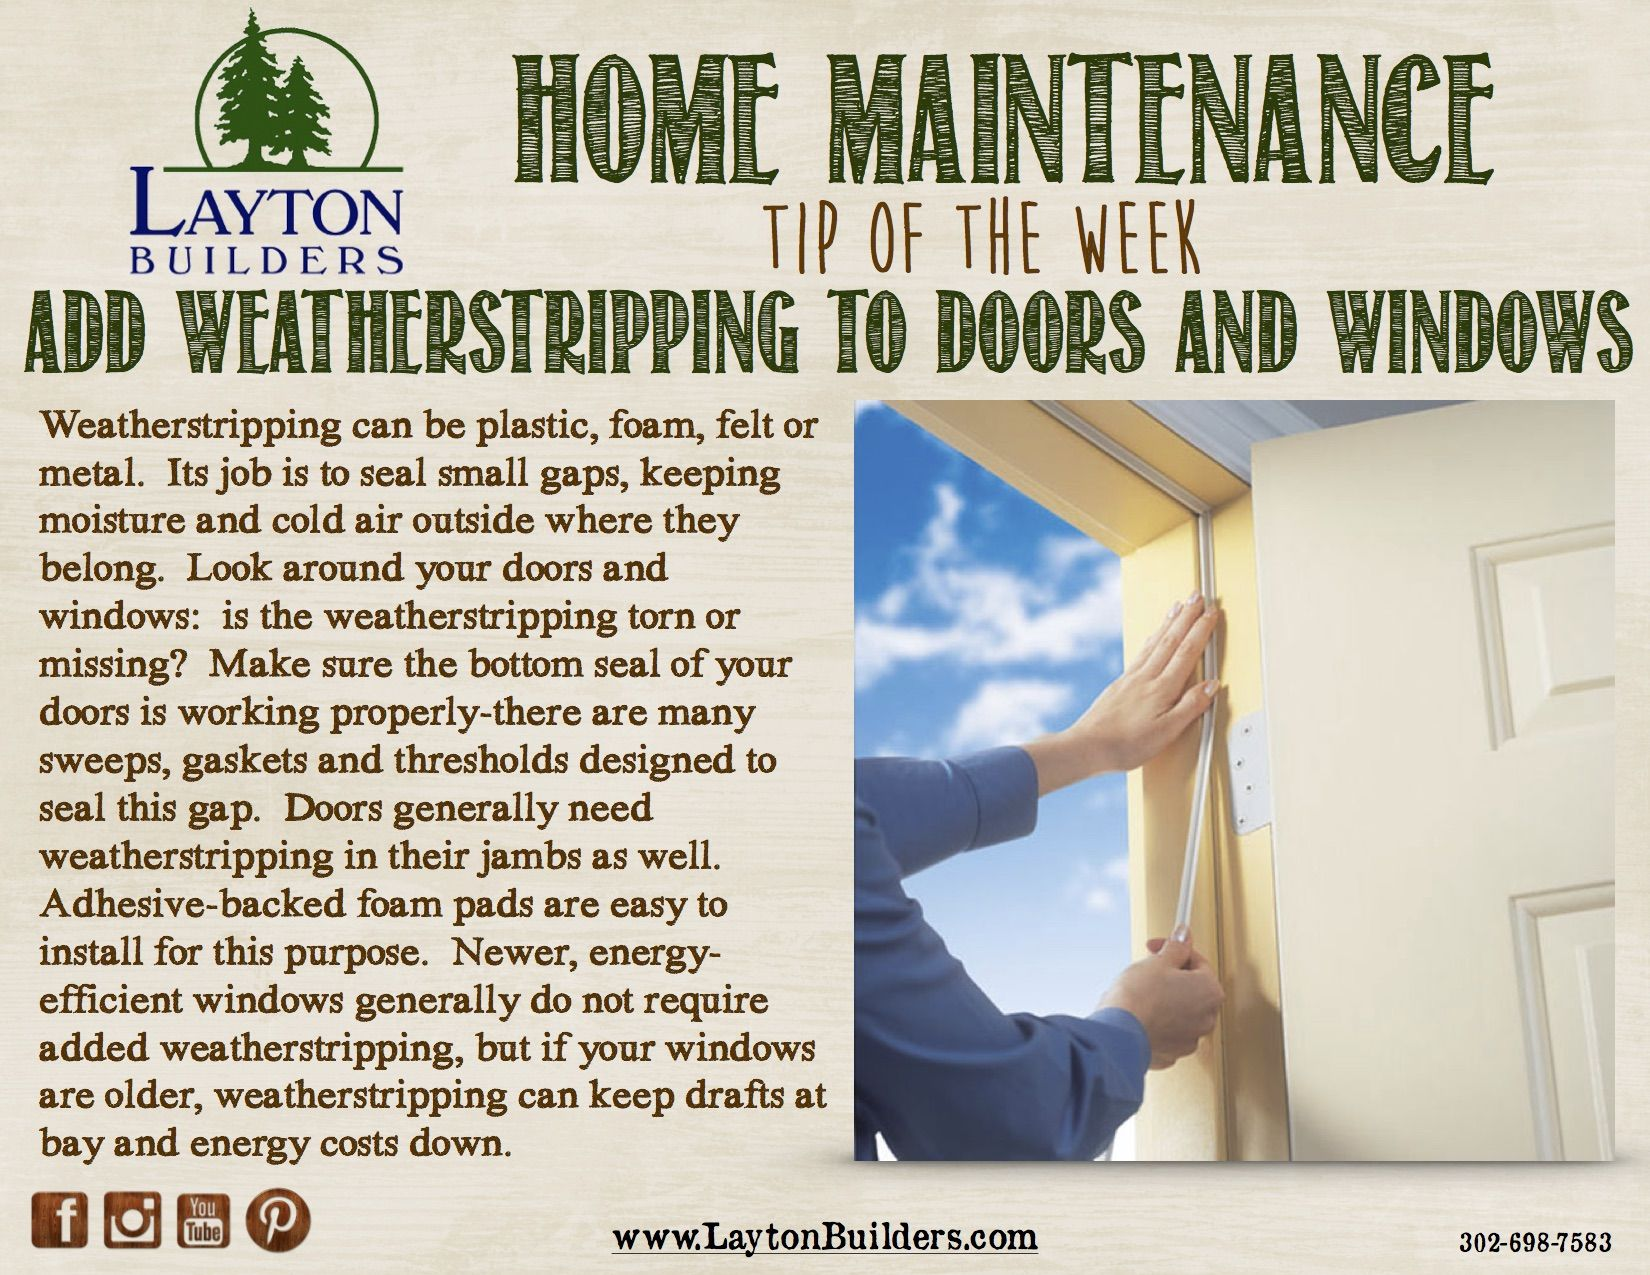 Home Maintenance Tip Of The Week From Layton Builders Tips